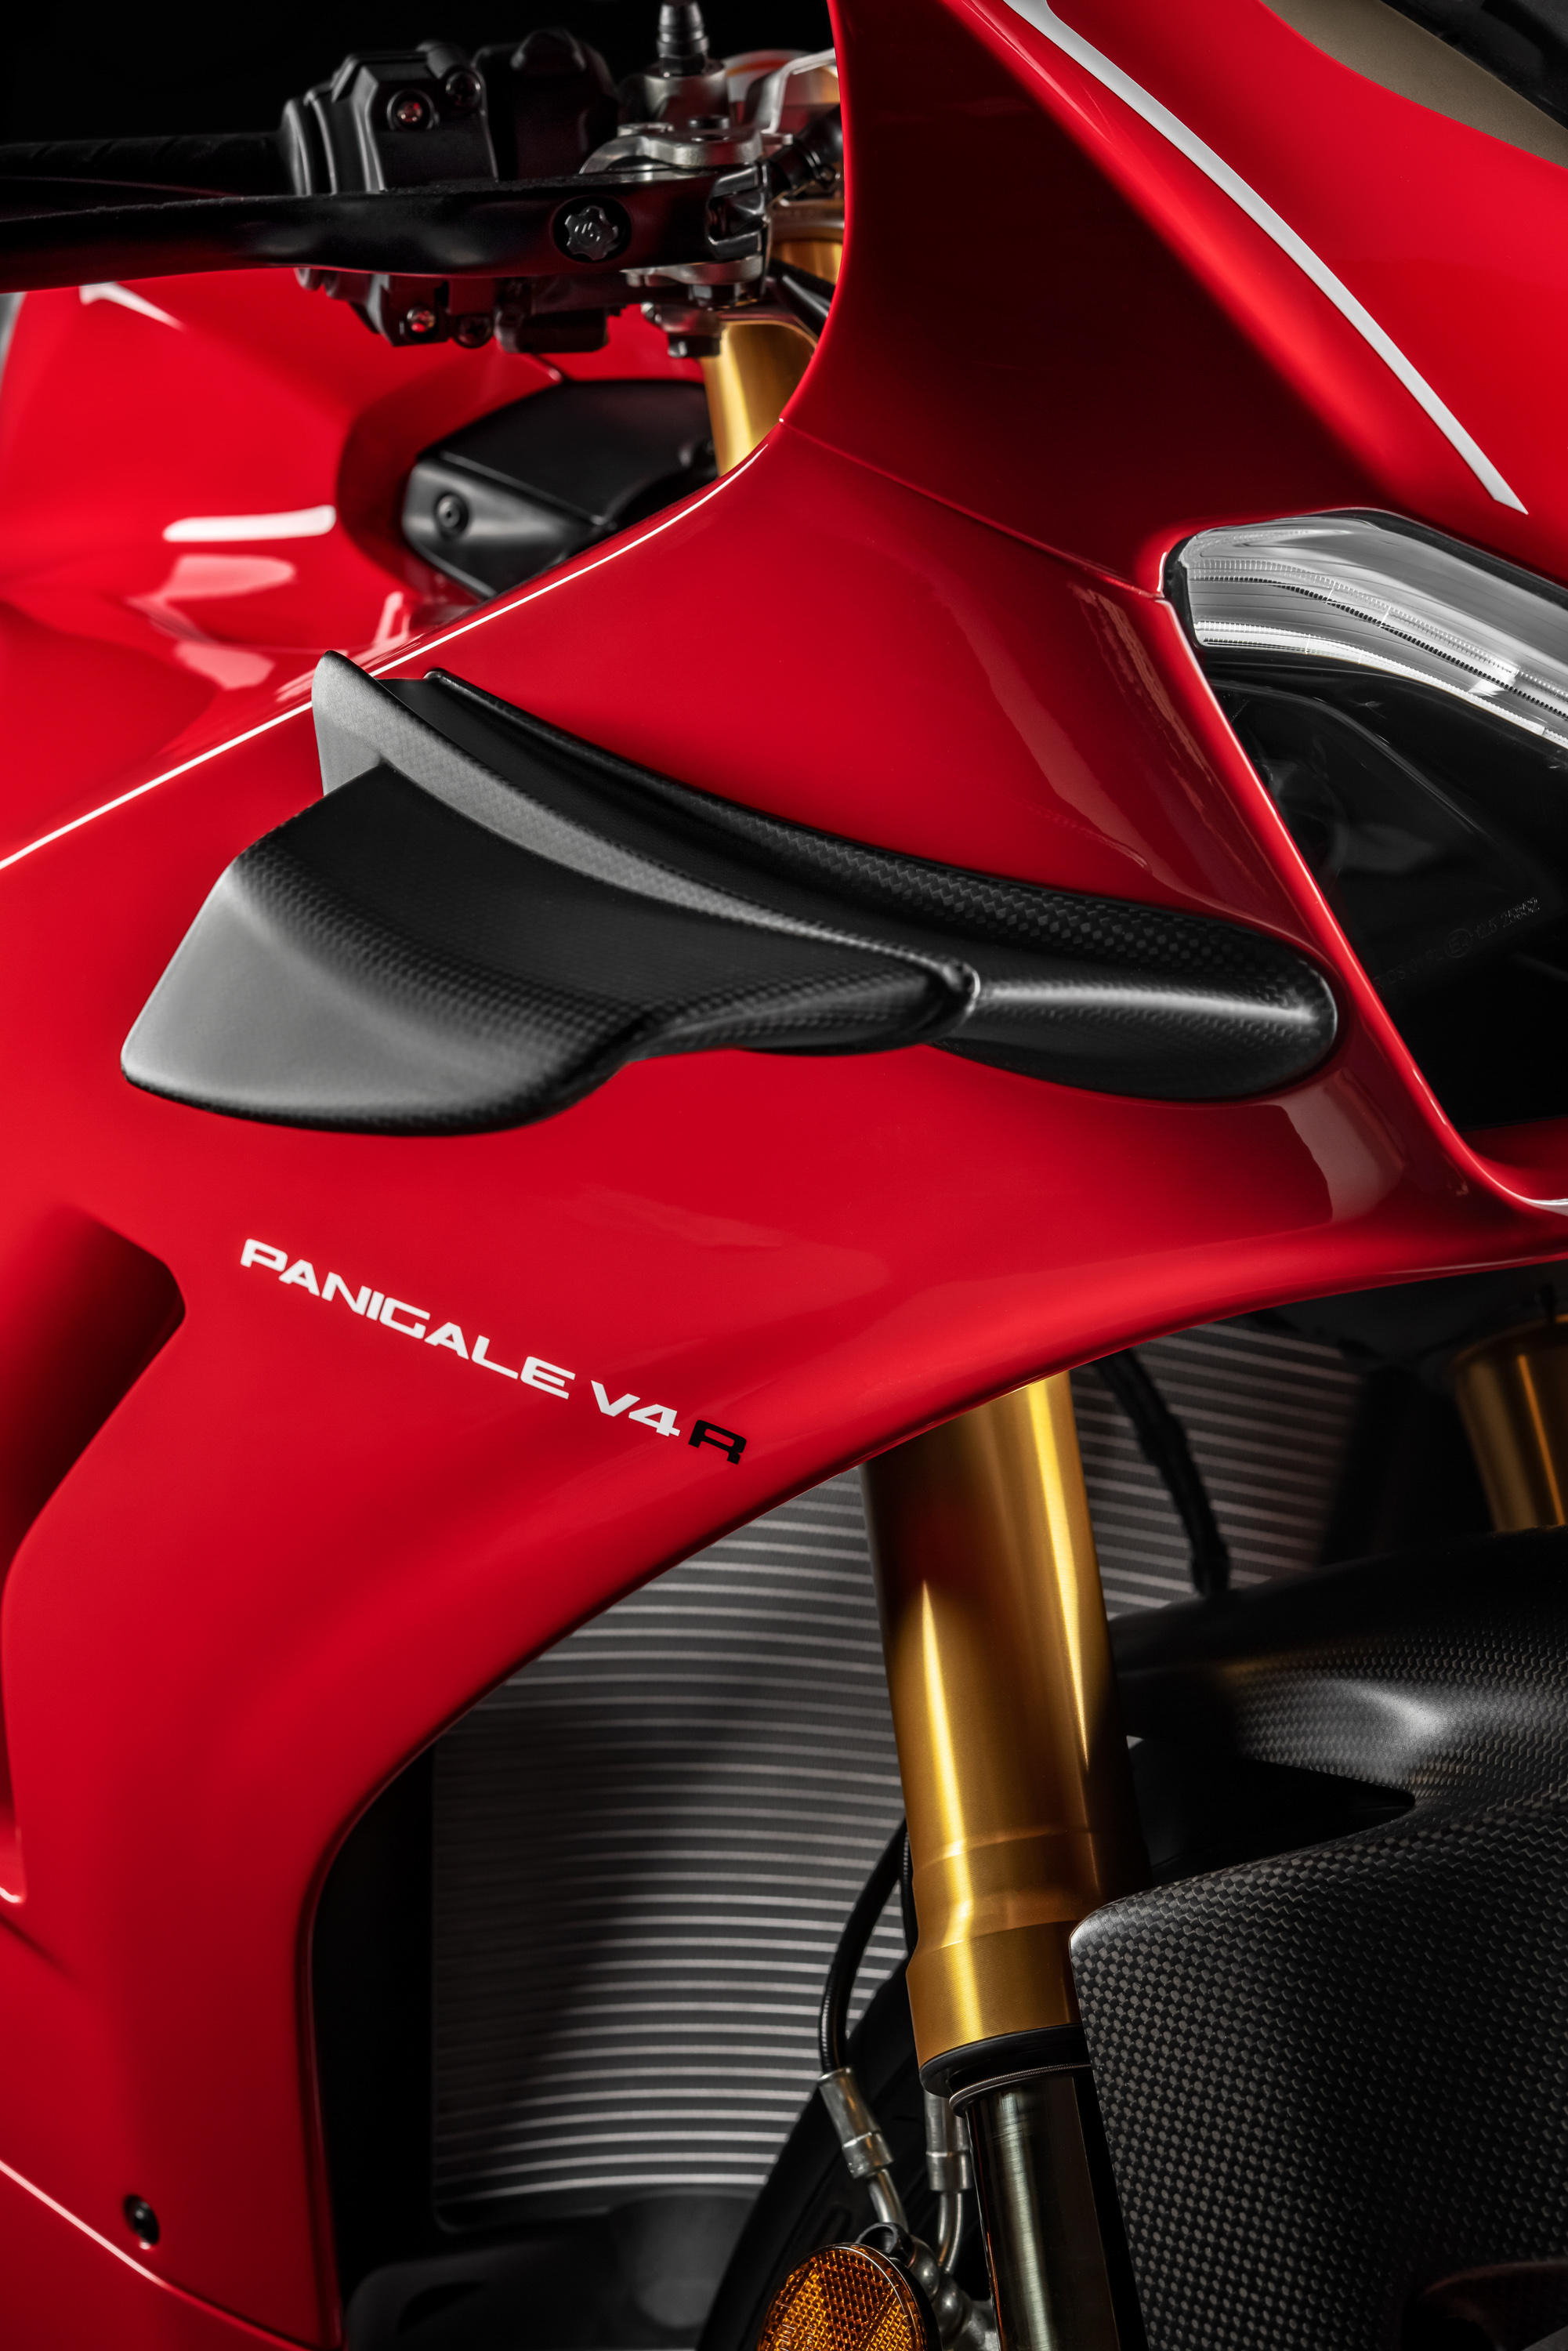 Drive A Tank >> Ducati Announces Panigale V4 R Track Special Ahead of 2018 ...